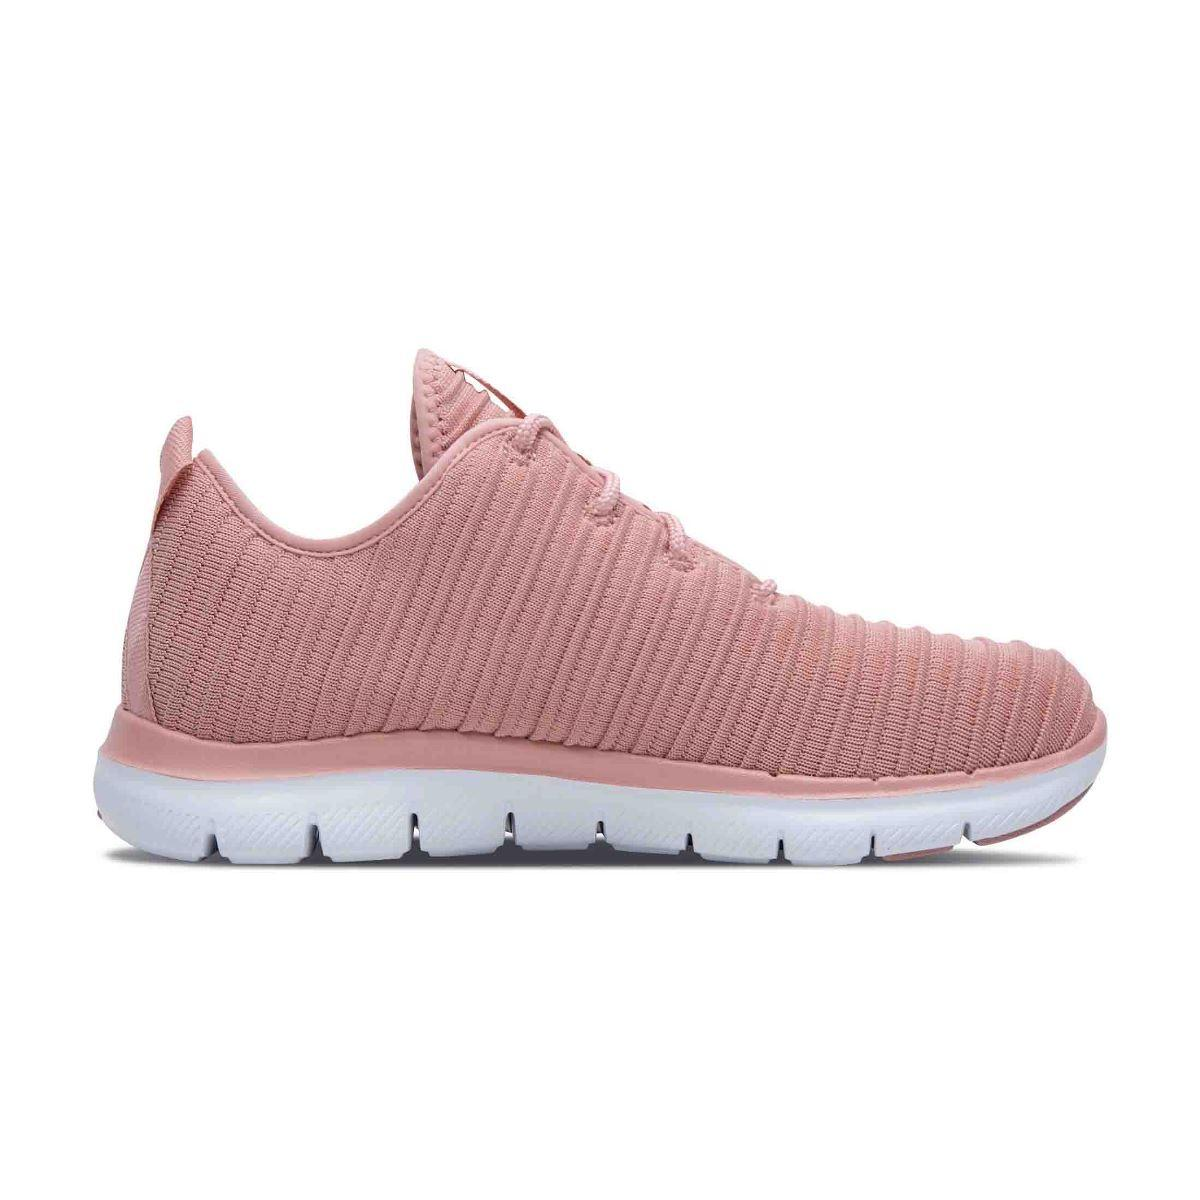 Nike Free Rn Womens Running Shoes Racer Pink Chlorine Blue Hitam Off ... bc800f31dc